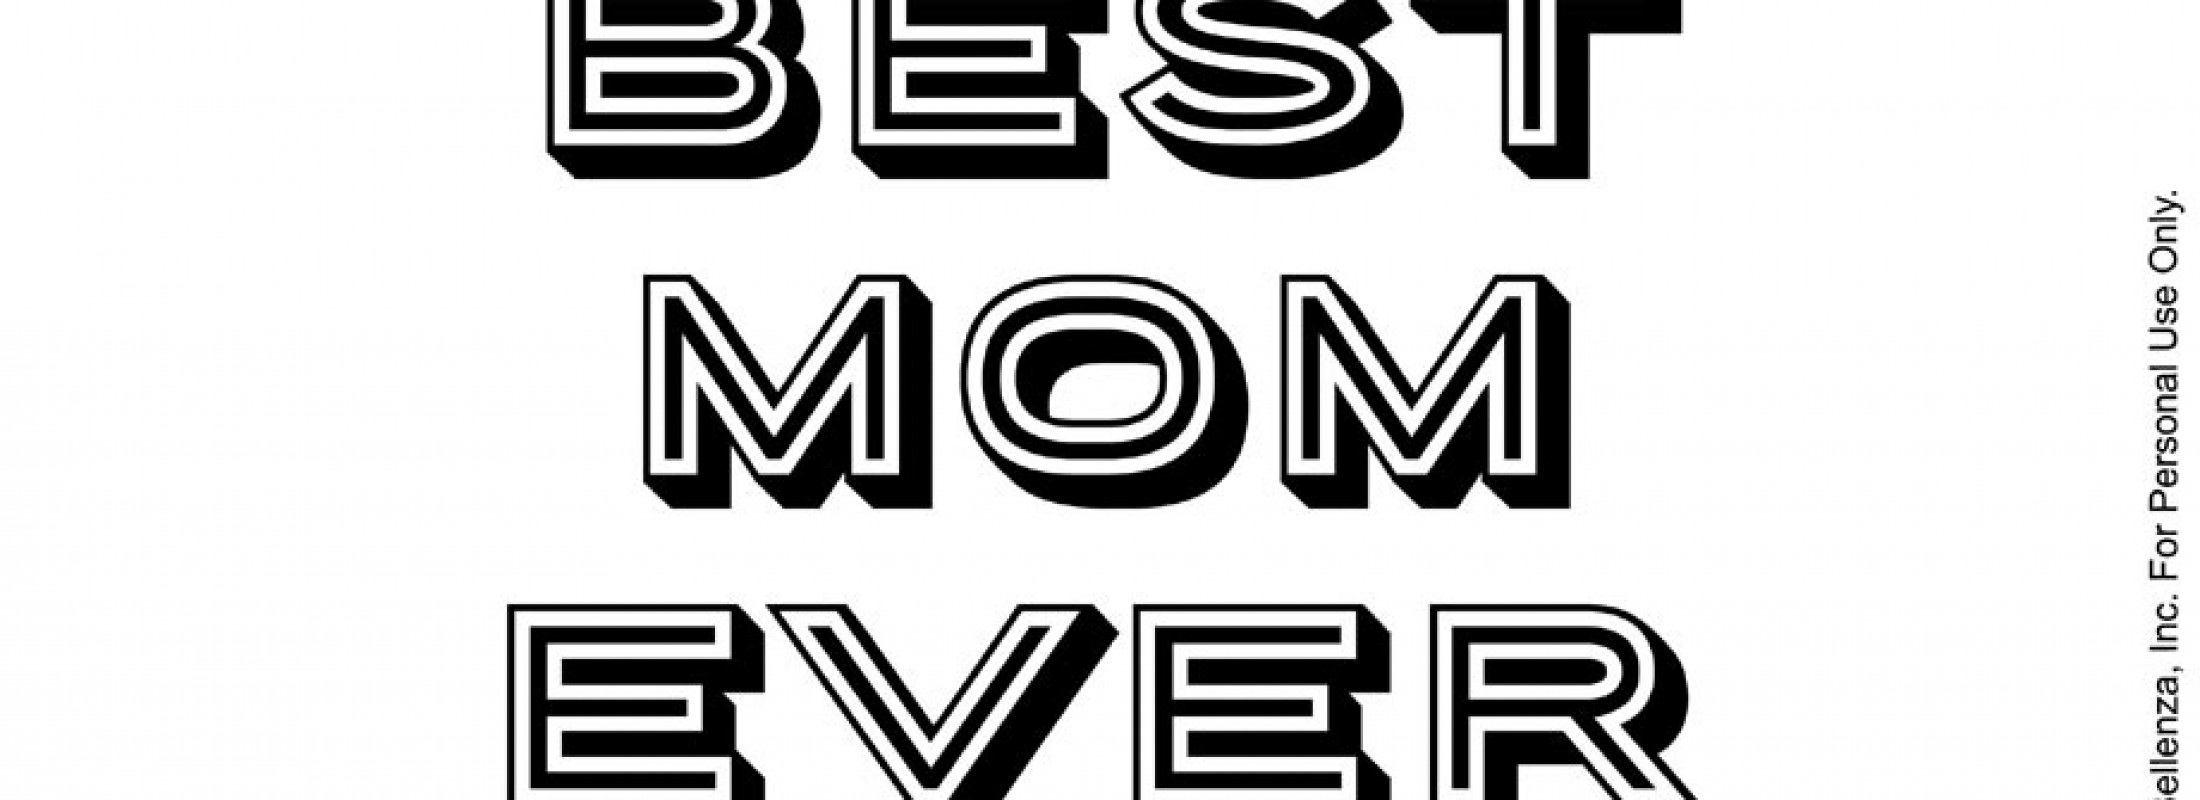 A Free Printable For Best Mom Ever That Dads Can Download For Their Kids To  Color